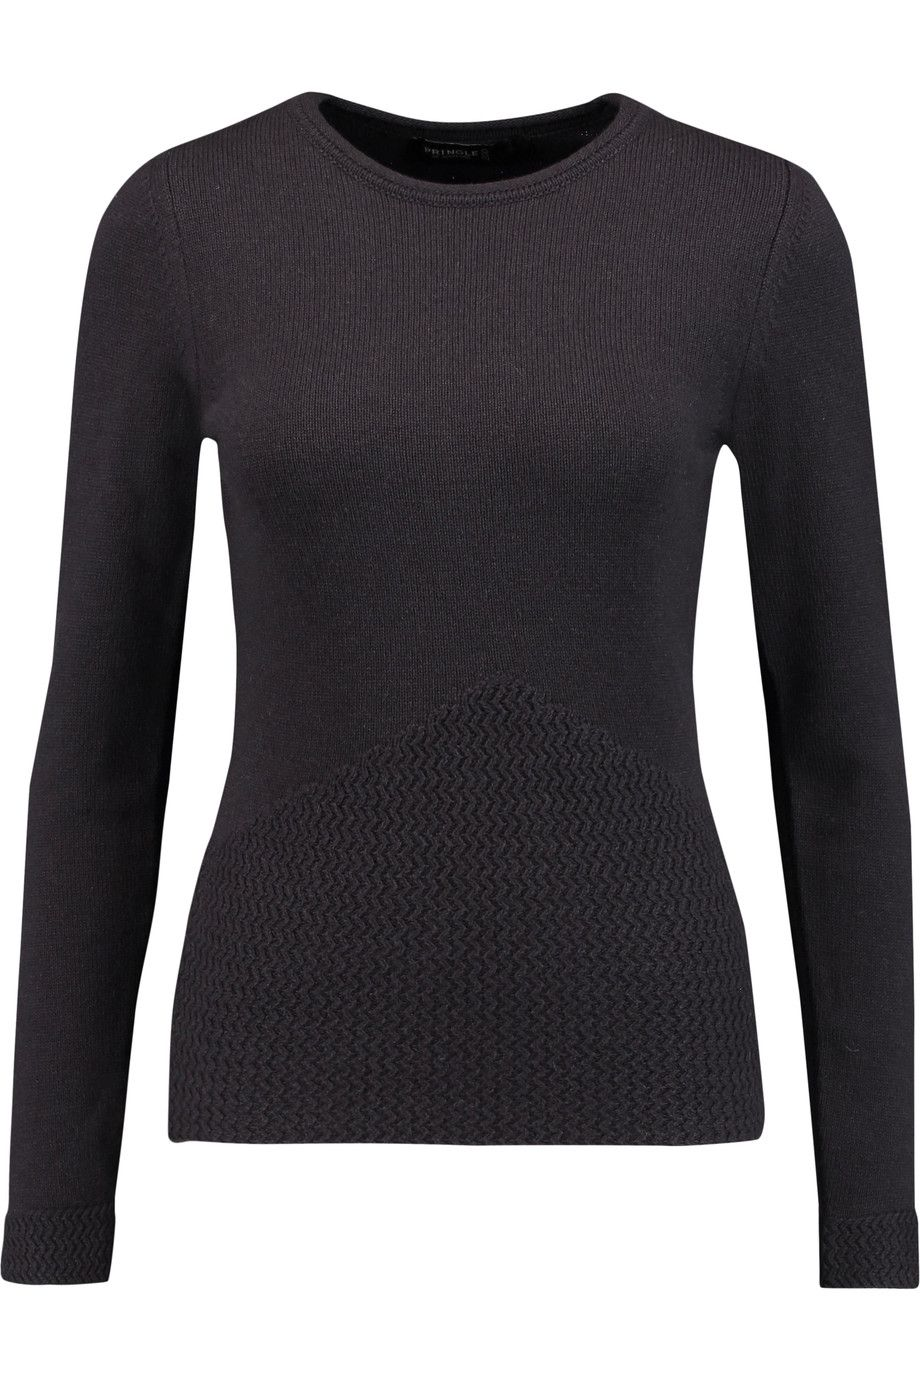 Shop on-sale Pringle of Scotland Cashmere sweater. Browse other ...